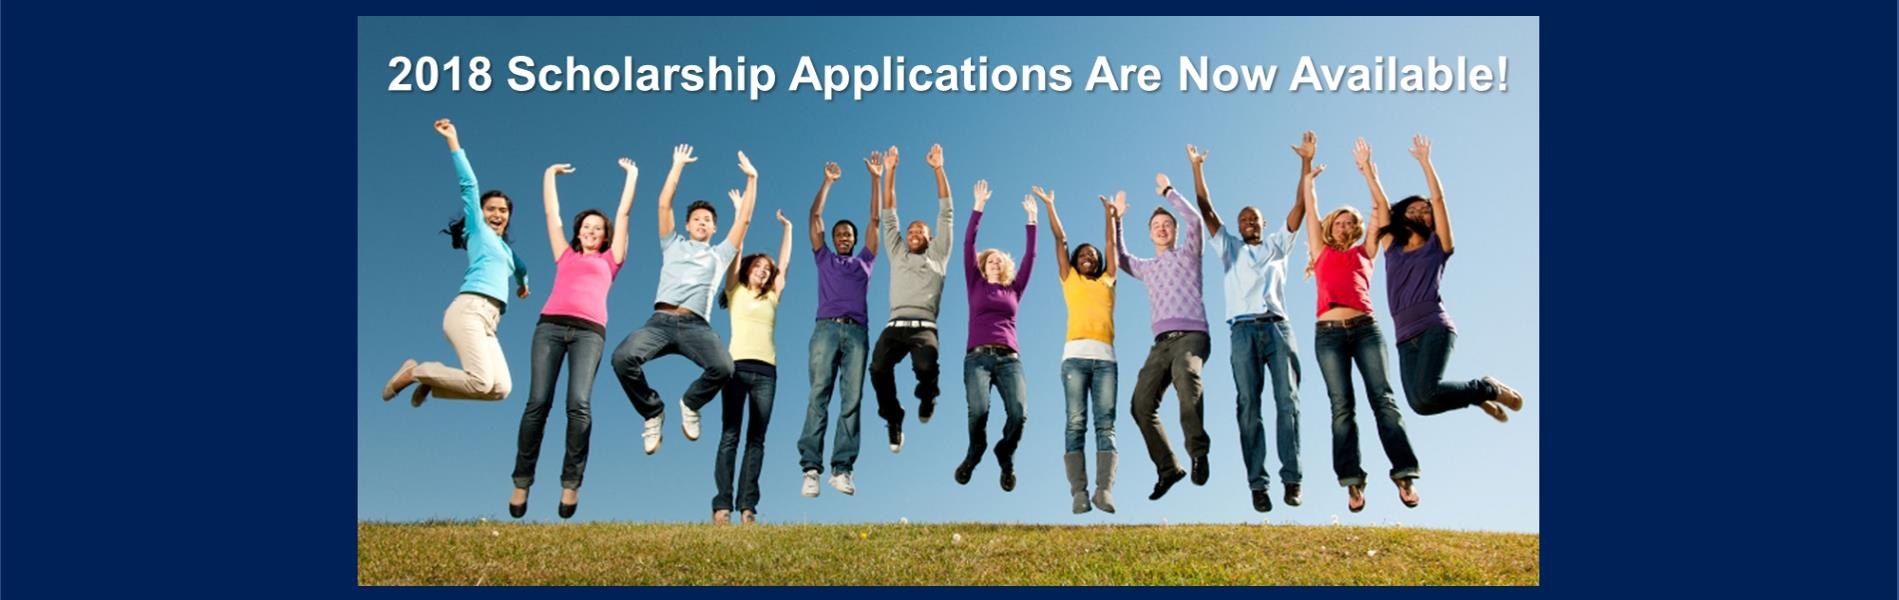 Celebrate Tomorrow's Leaders Today with Scholarships!